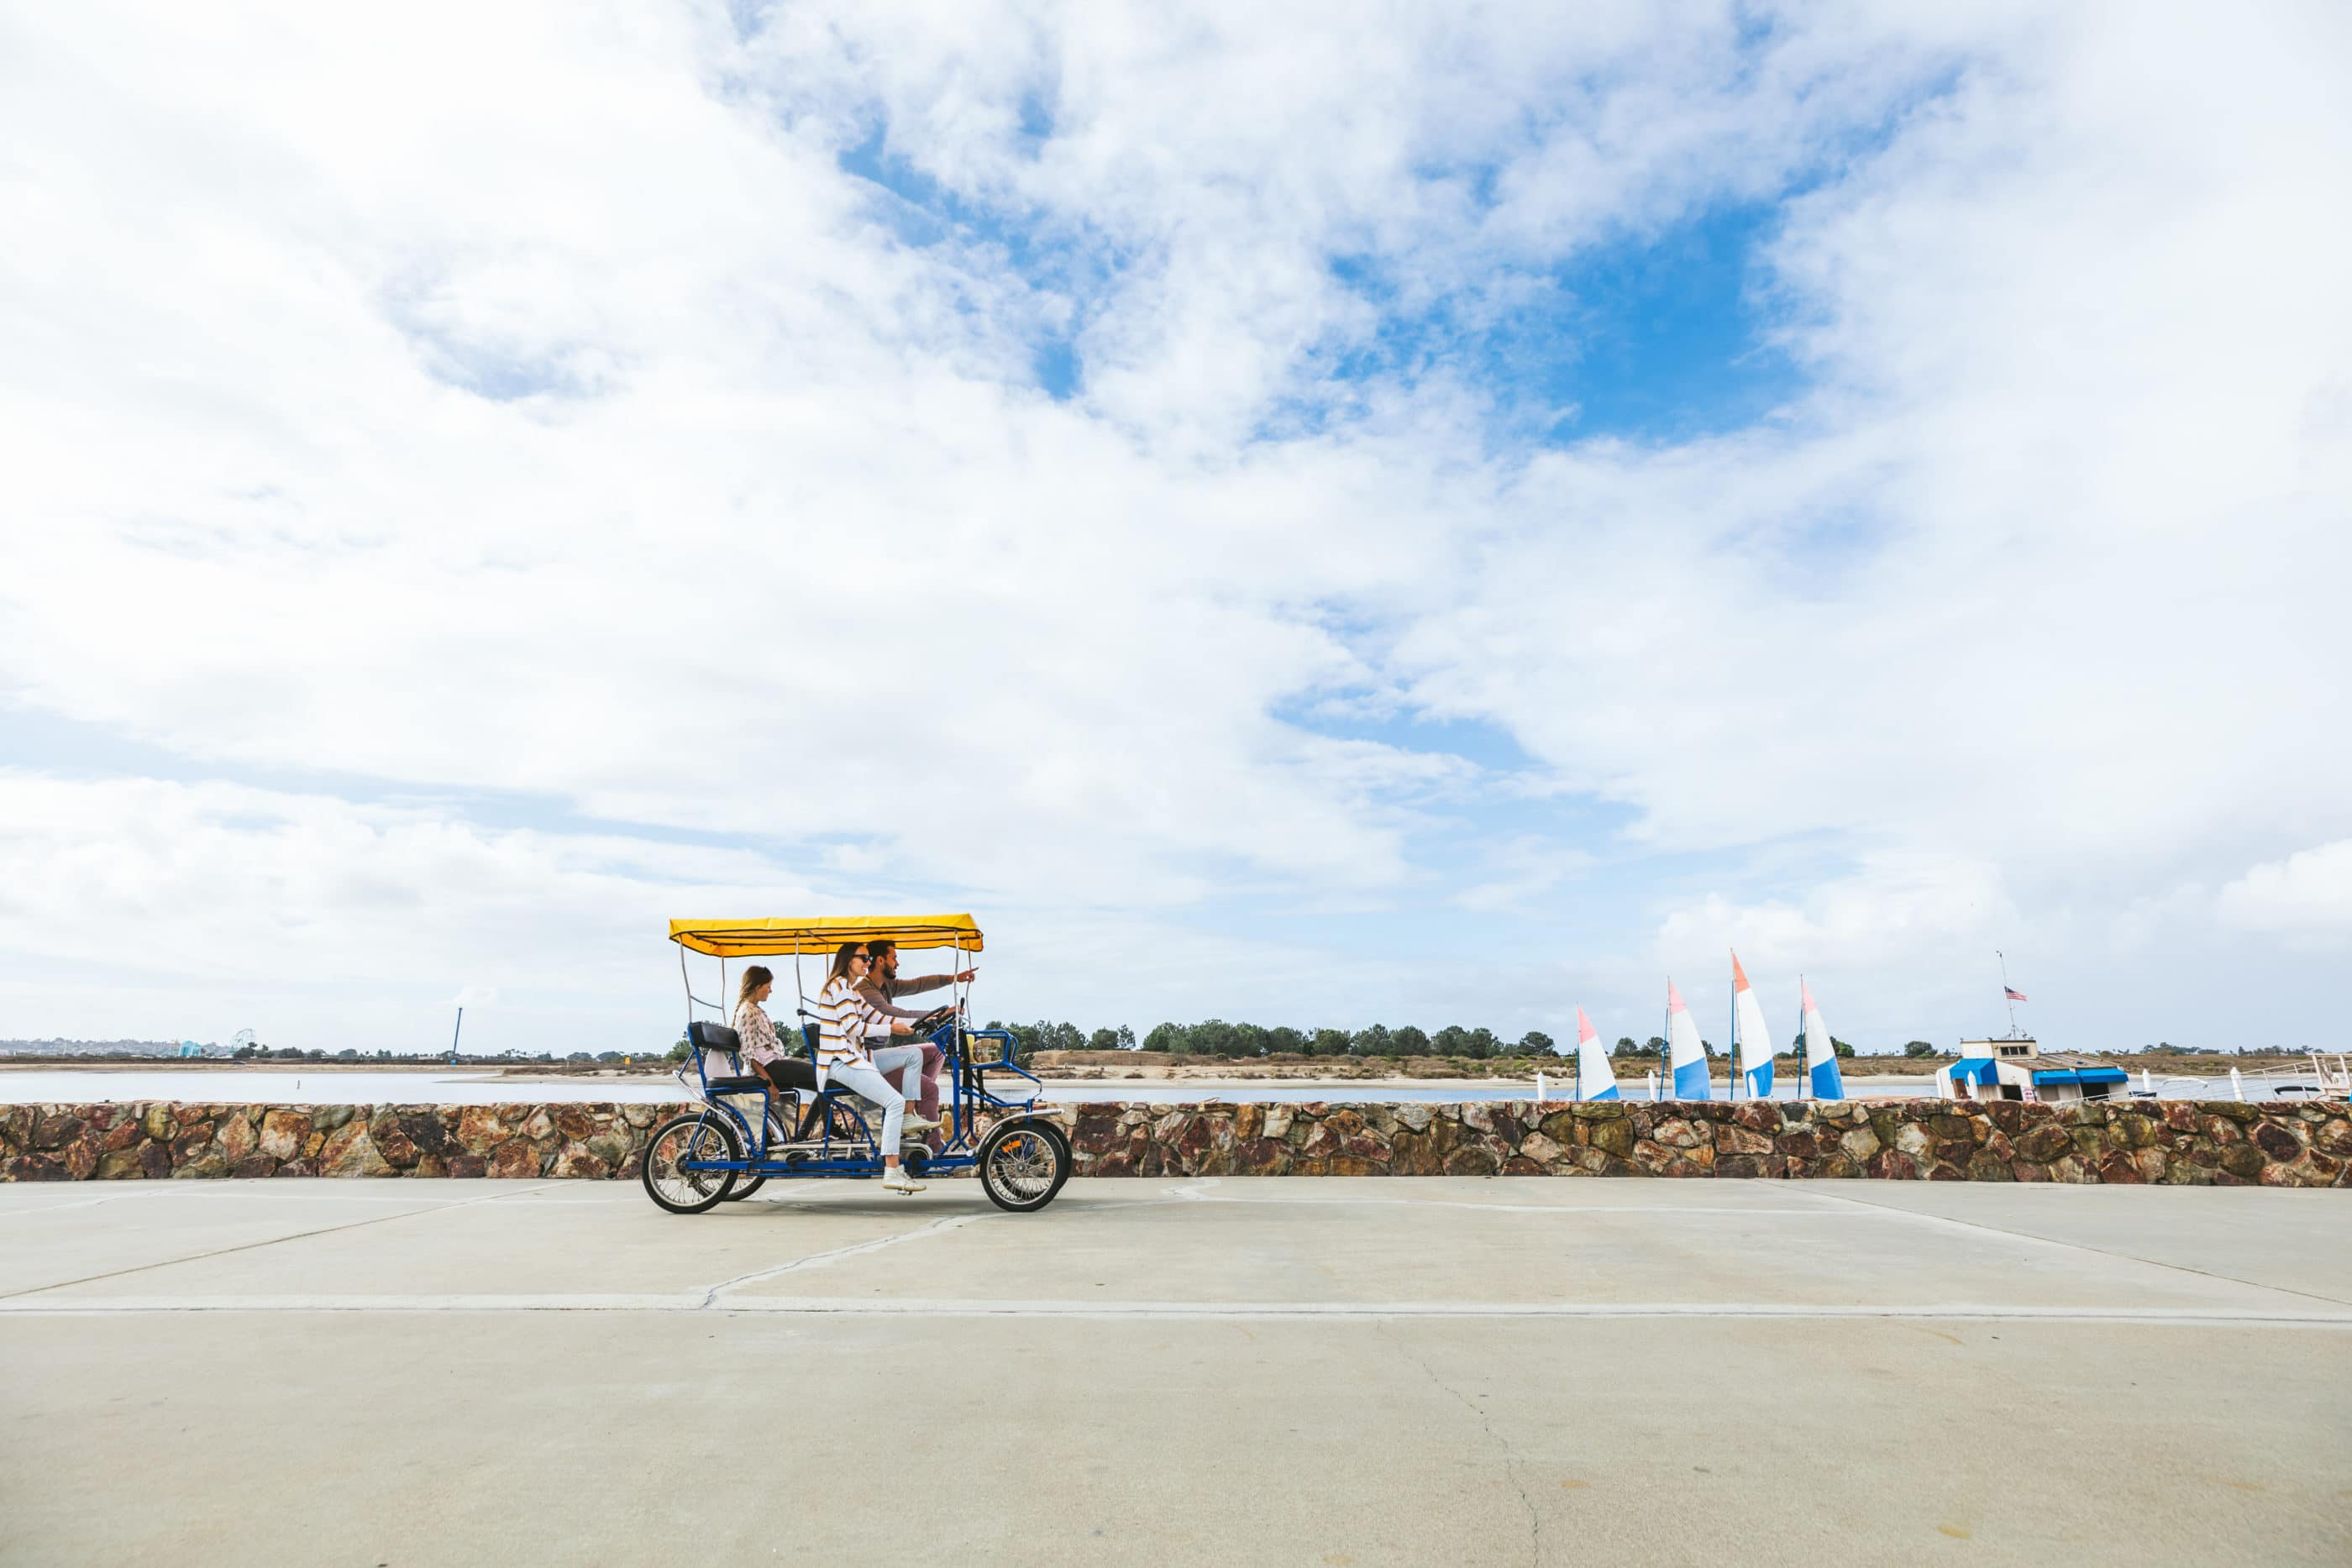 A family in a surrey bike rides down the boardwalk along Mission Bay.